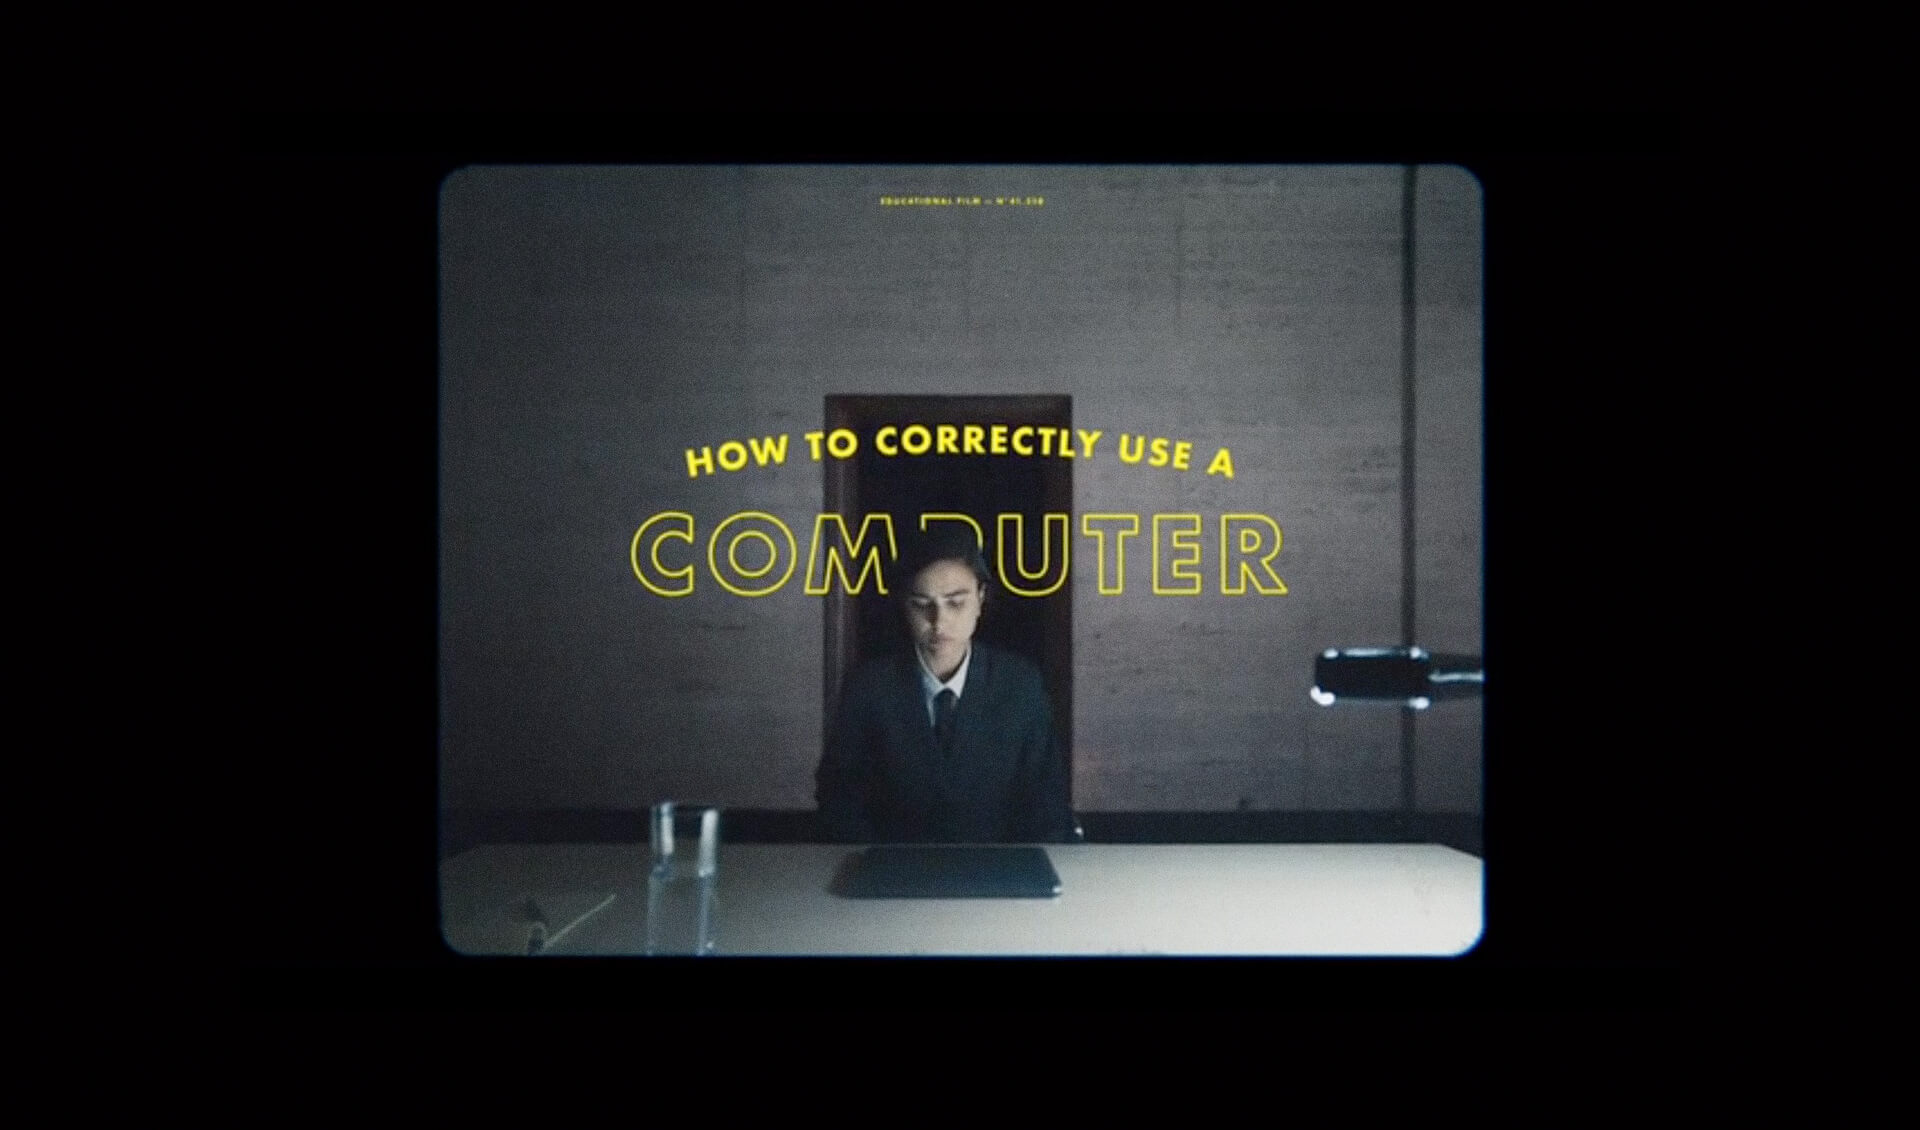 How To Use Correctly a Computer : une pub Apple pour l'iPad Pro